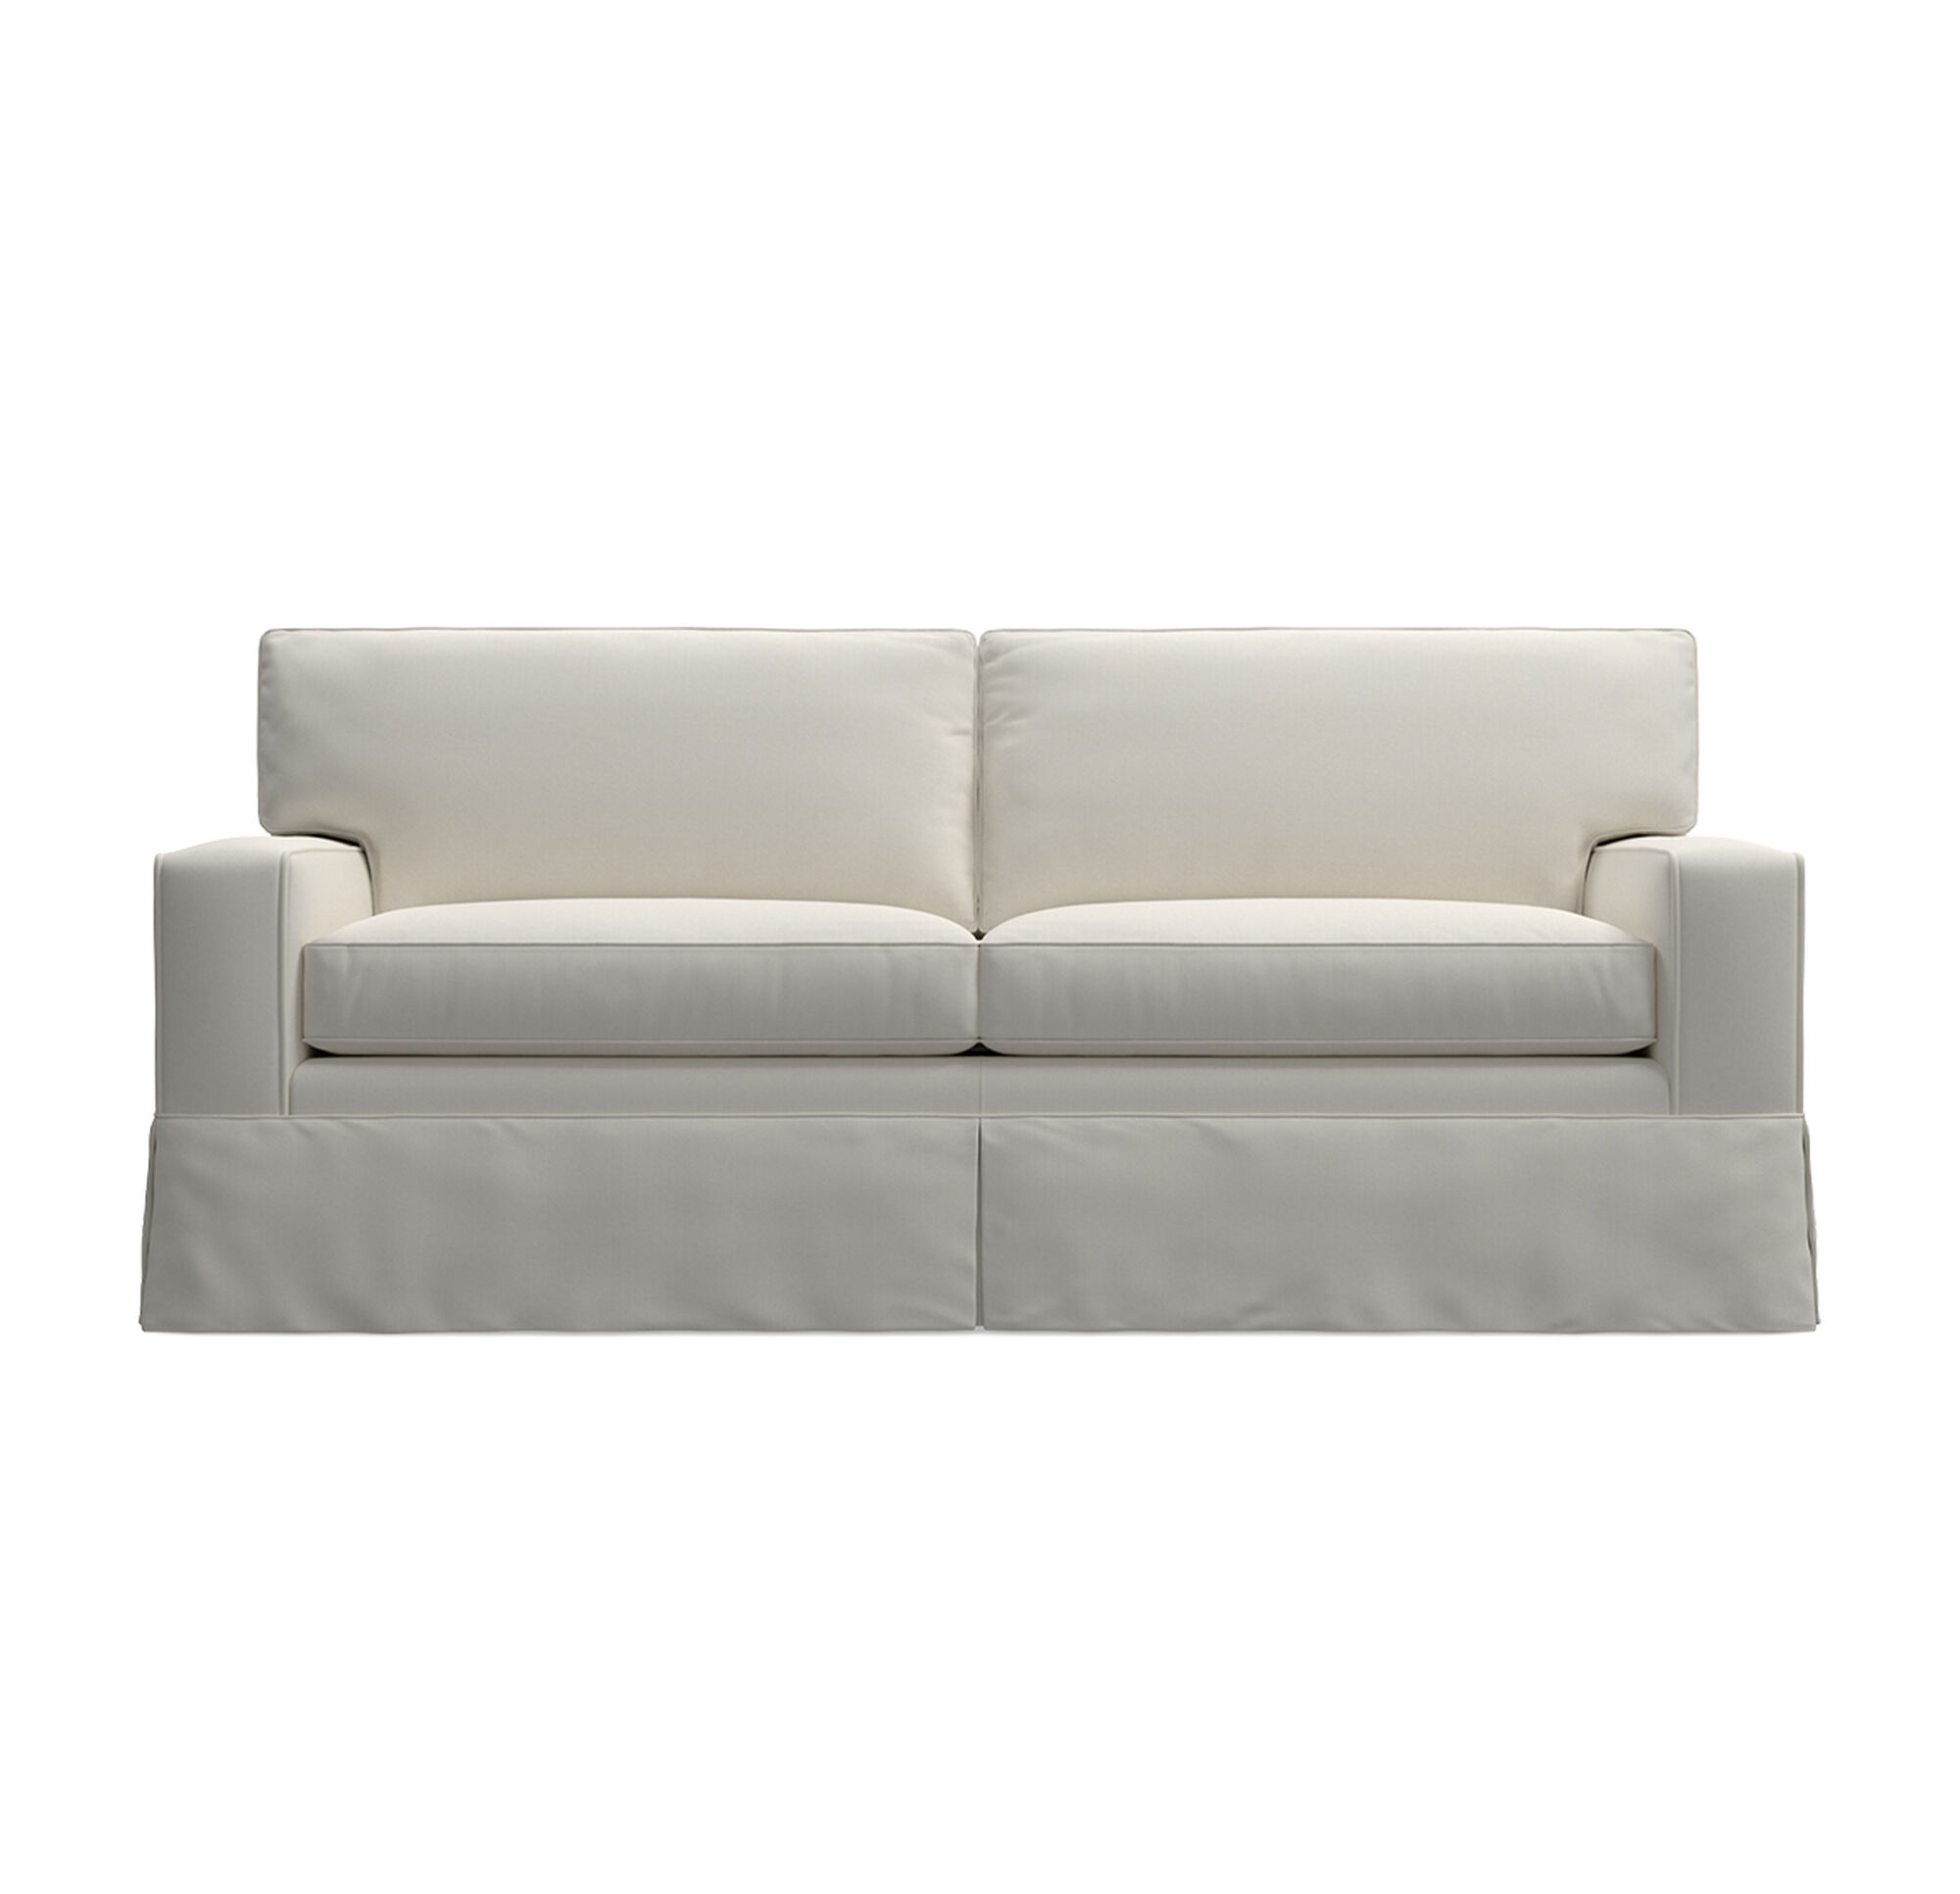 ALEX II LUXE QUEEN SLIPCOVER SLEEPER SOFA - LOOSE SKIRT, , hi-res